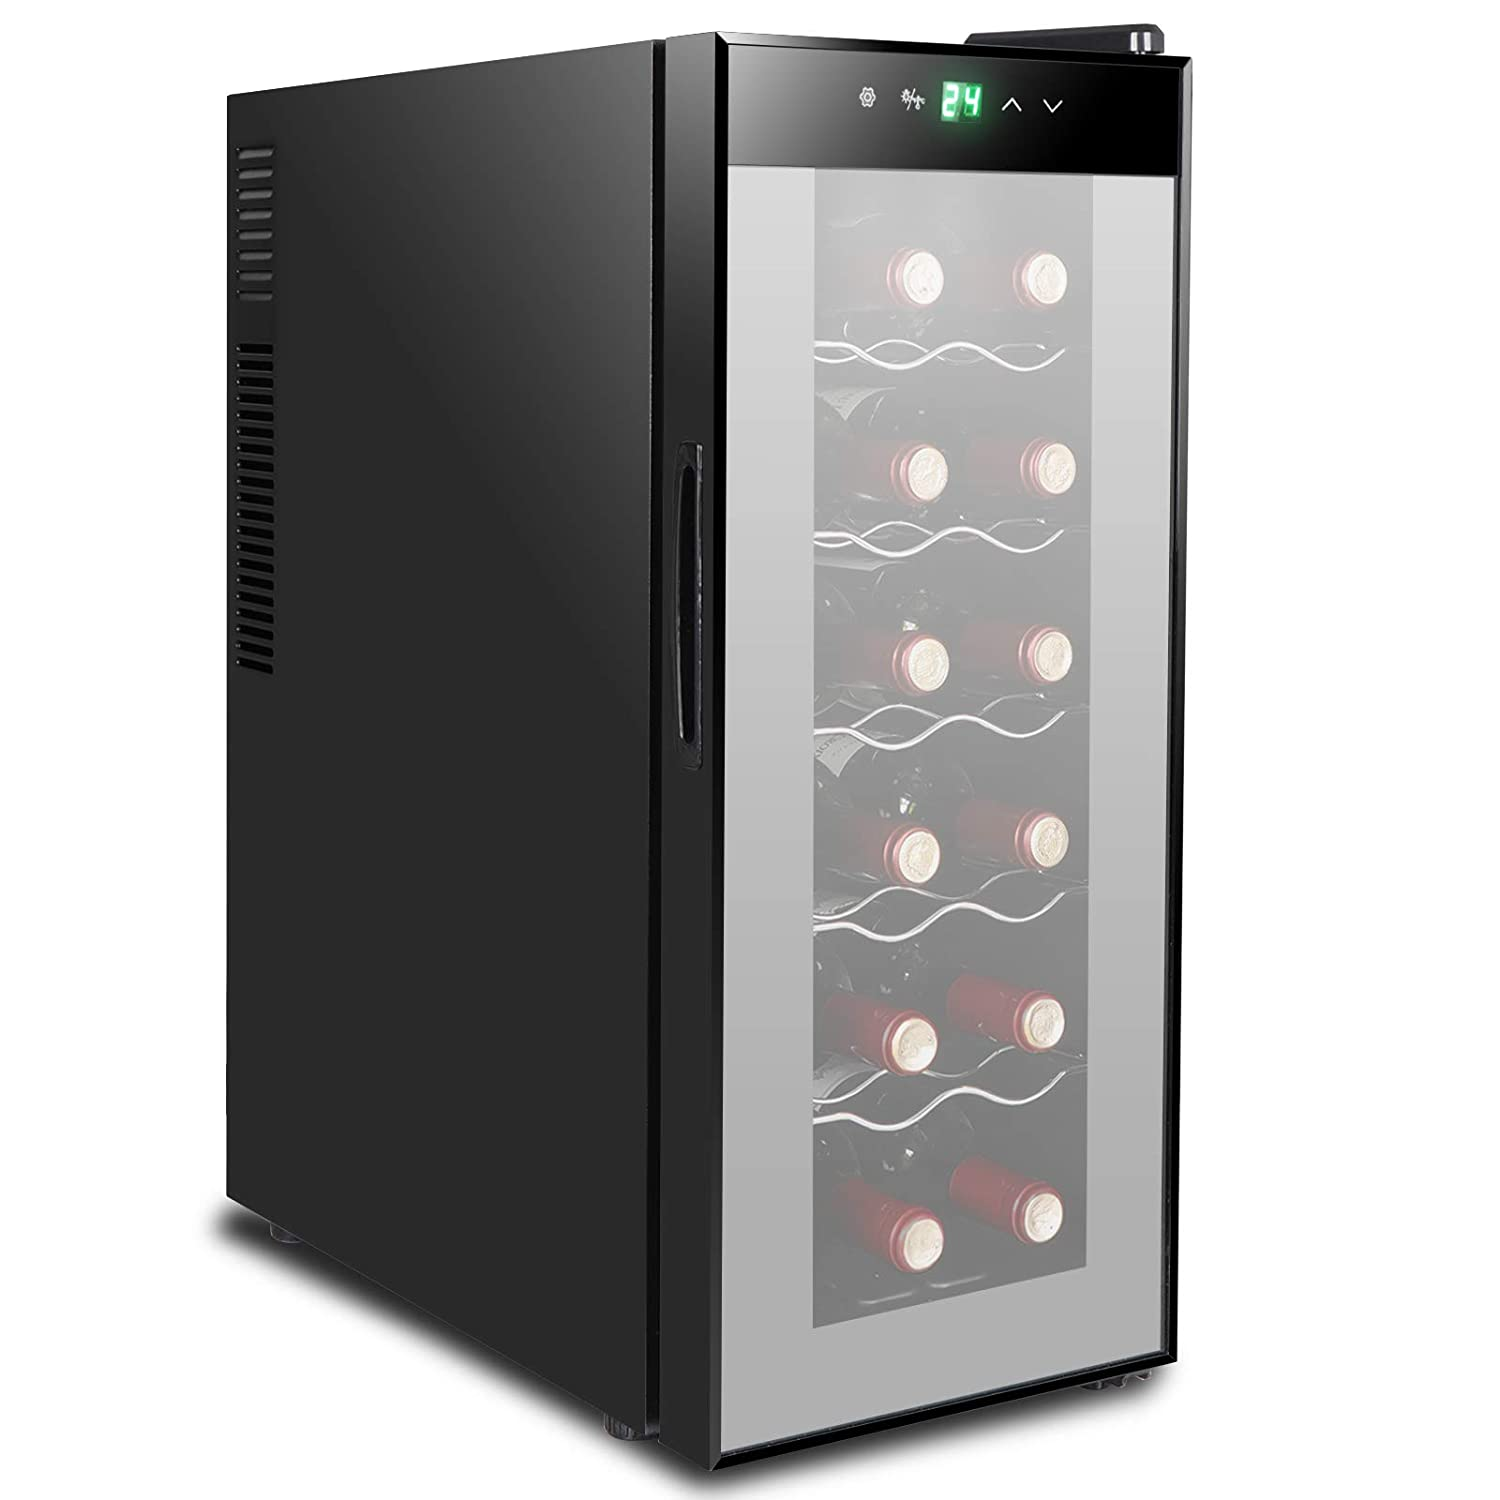 BBBuy 18 Bottle Thermoelectric Red & White Wine Cooler/Chiller Counter Top Wine Cellar with Digital Temperature Display, Freestanding Refrigerator Smoked Glass Door, Quiet Operation Fridge (12 Bottle)